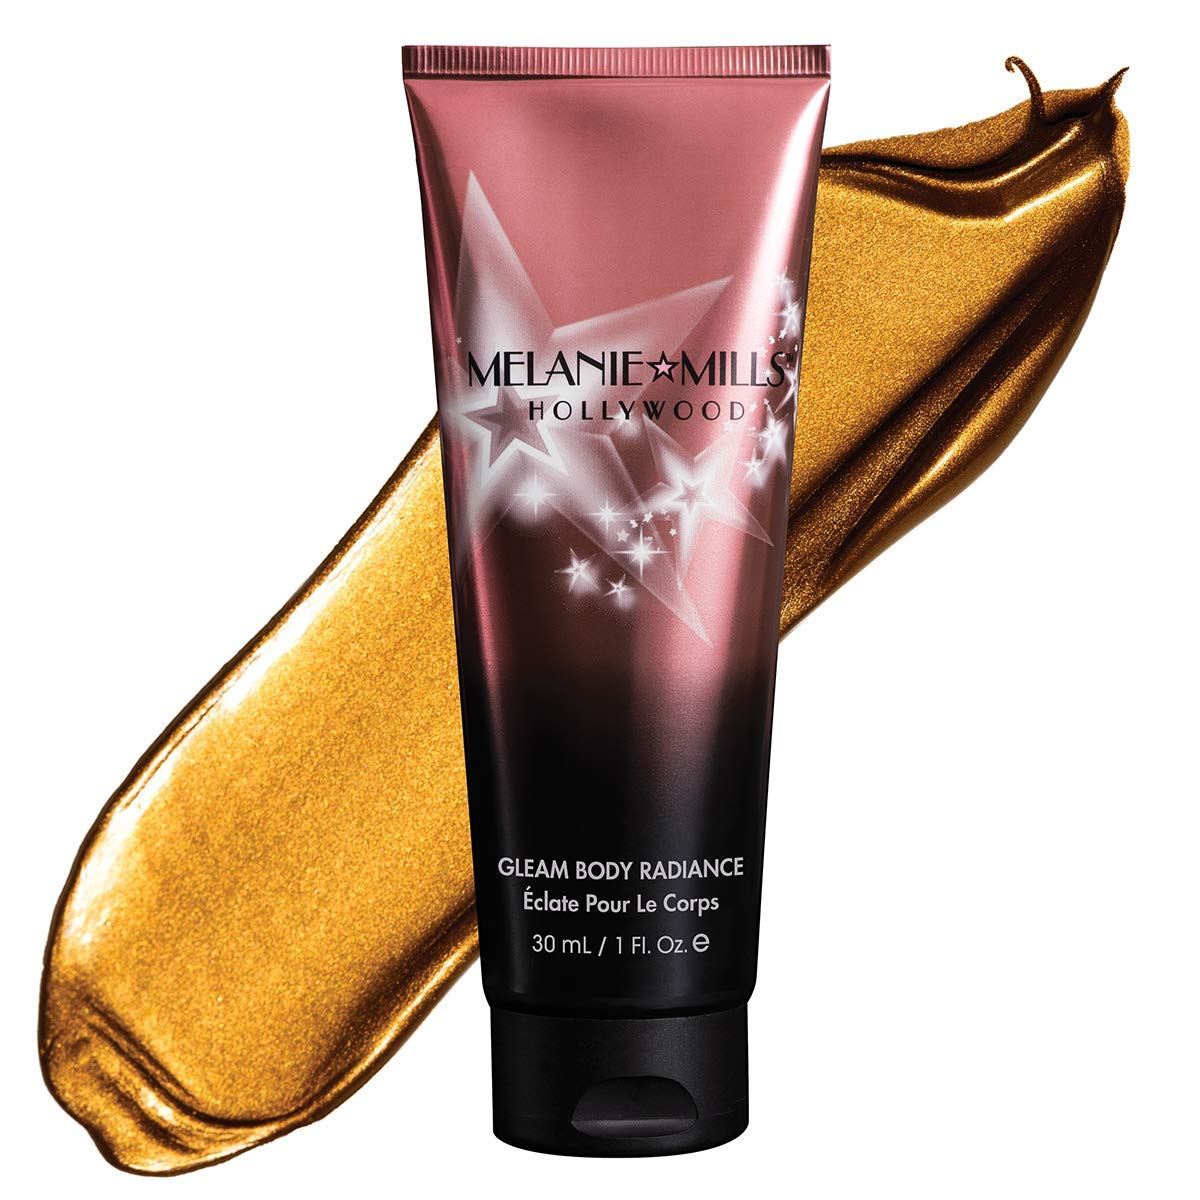 Melanie Mills Hollywood Gleam Body Radiance